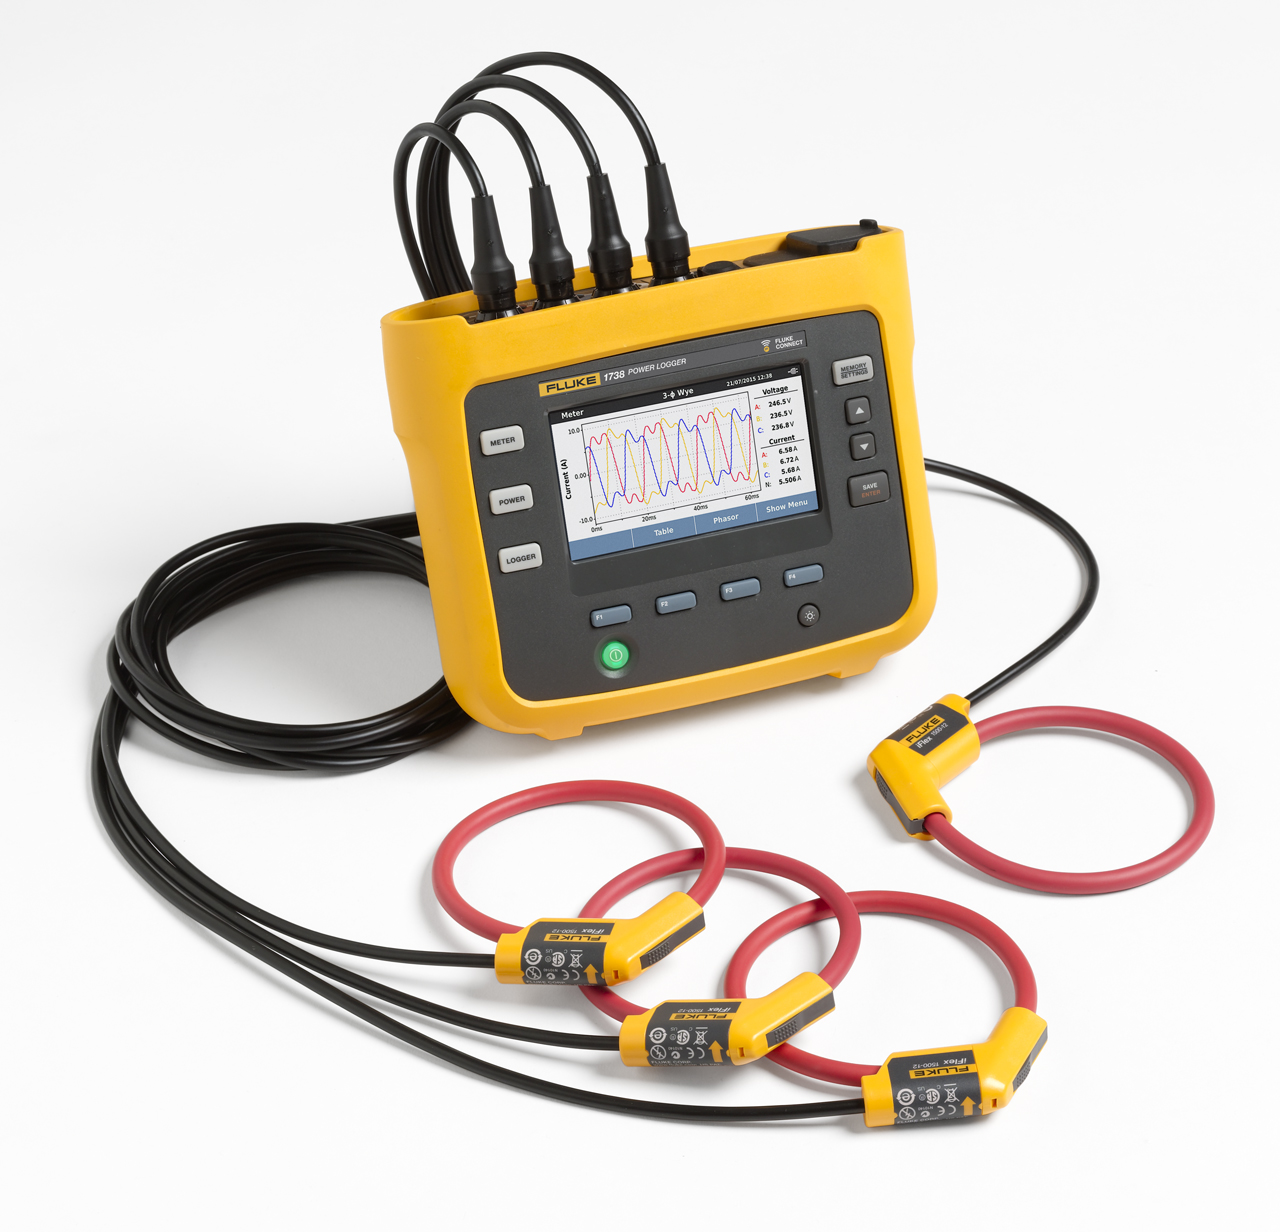 FLUKE 1738 - THREE-PHASE POWER LOGGER ADVANCED